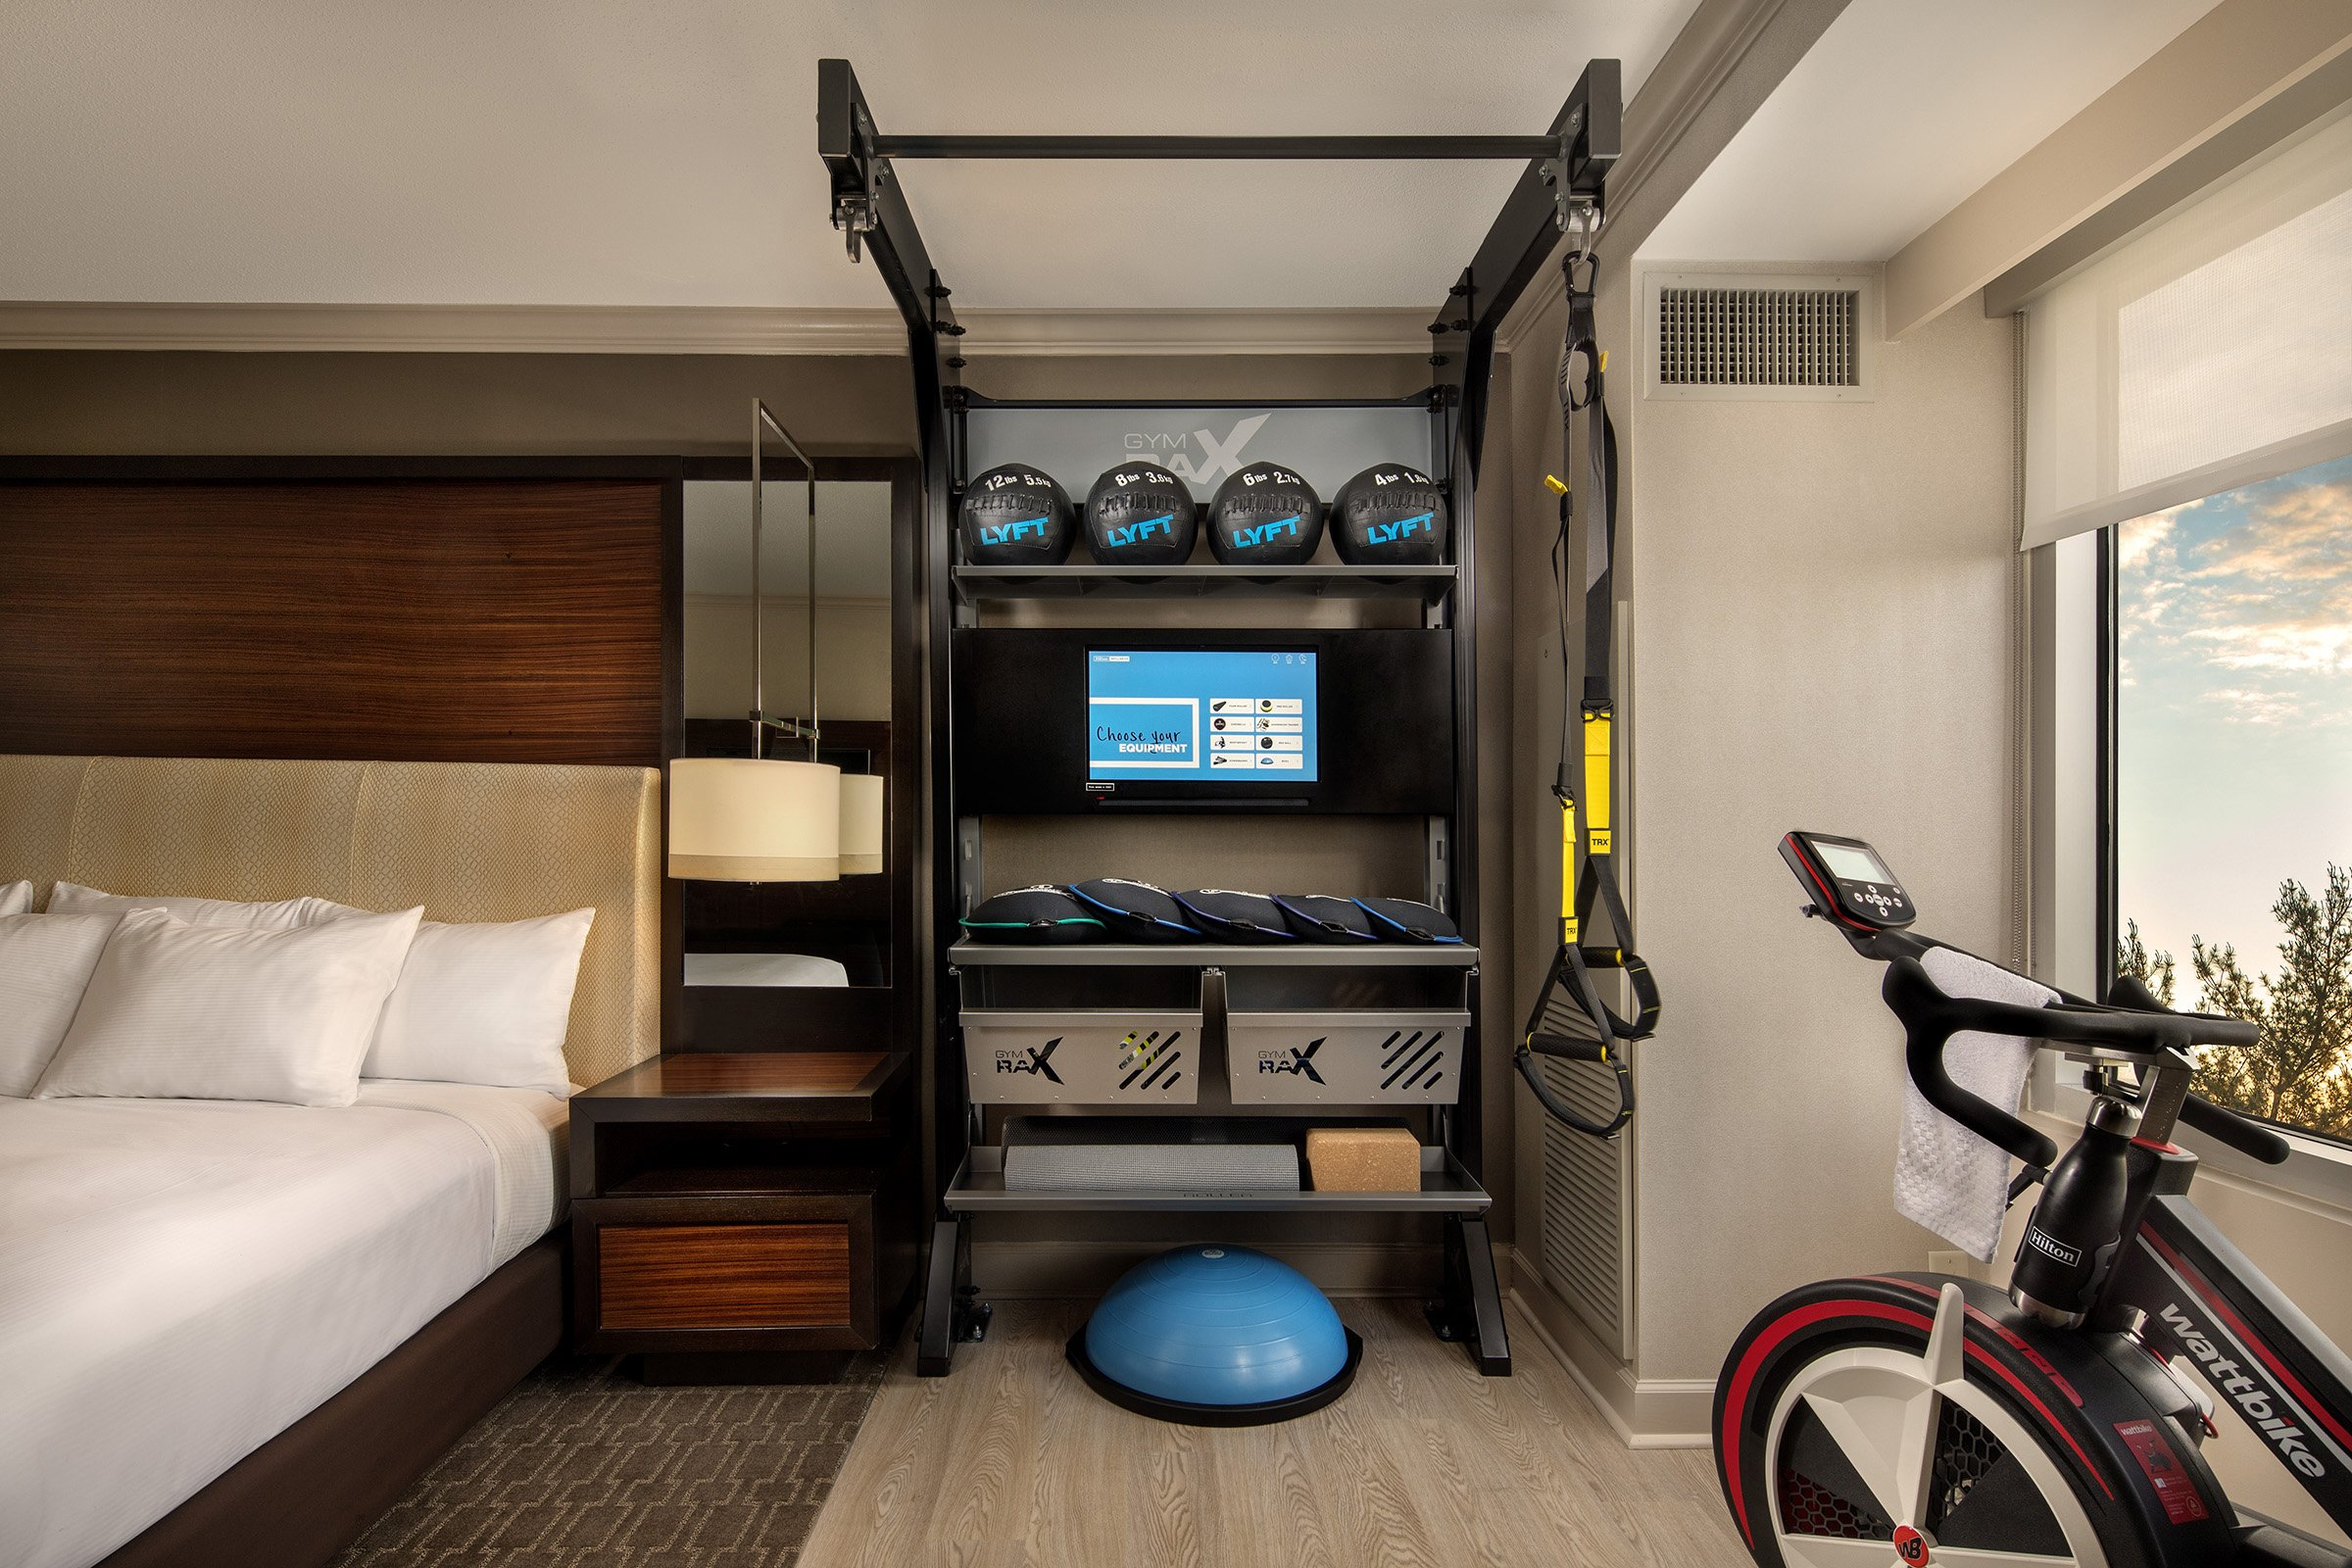 In Hilton S New Fitness Friendly Rooms You Can Literally